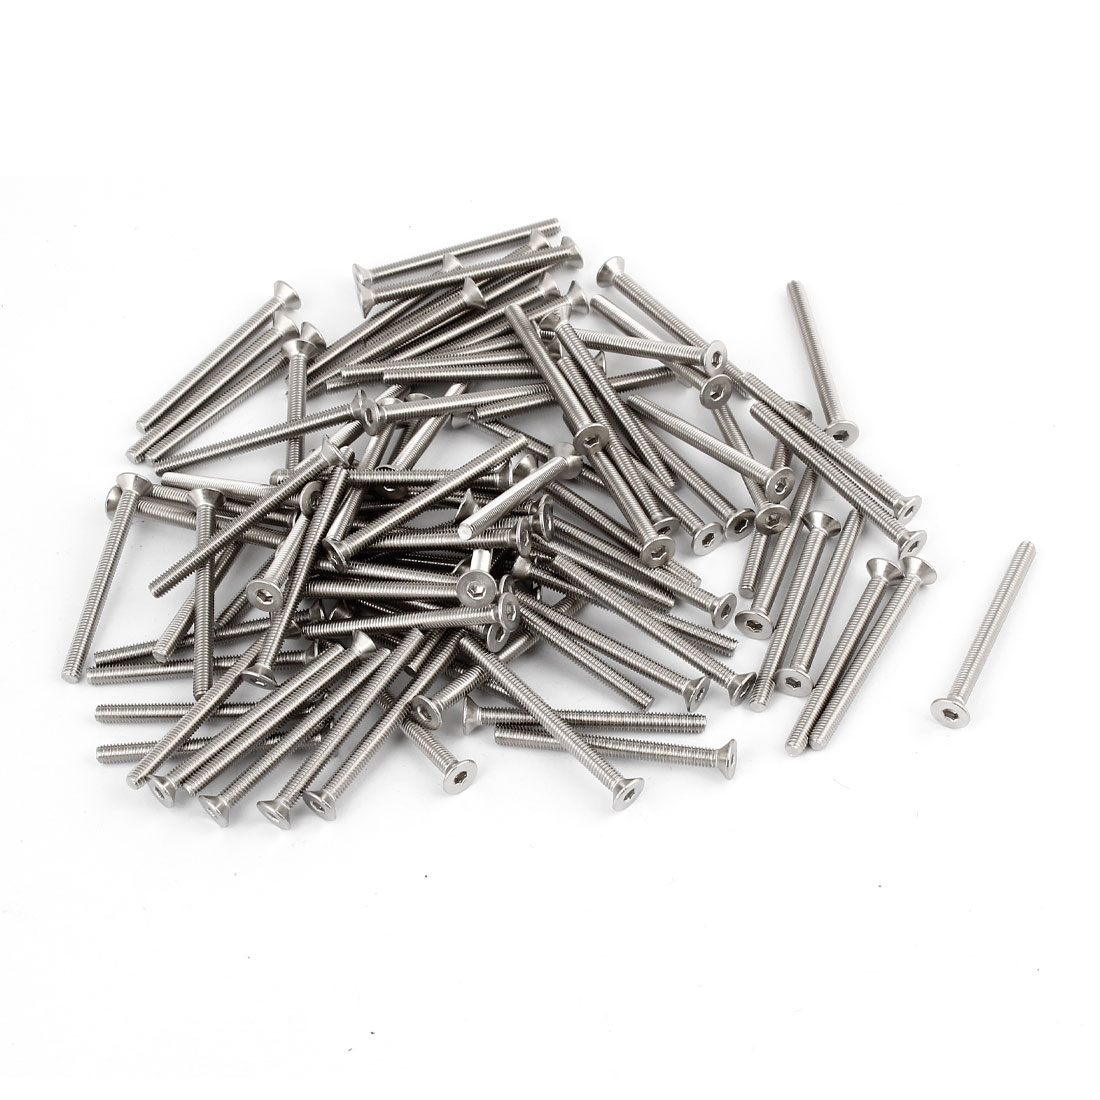 100 x 304HC Stainless Steel Countersunk Hex Key Bolt Screw M3x35mm Silver Tone